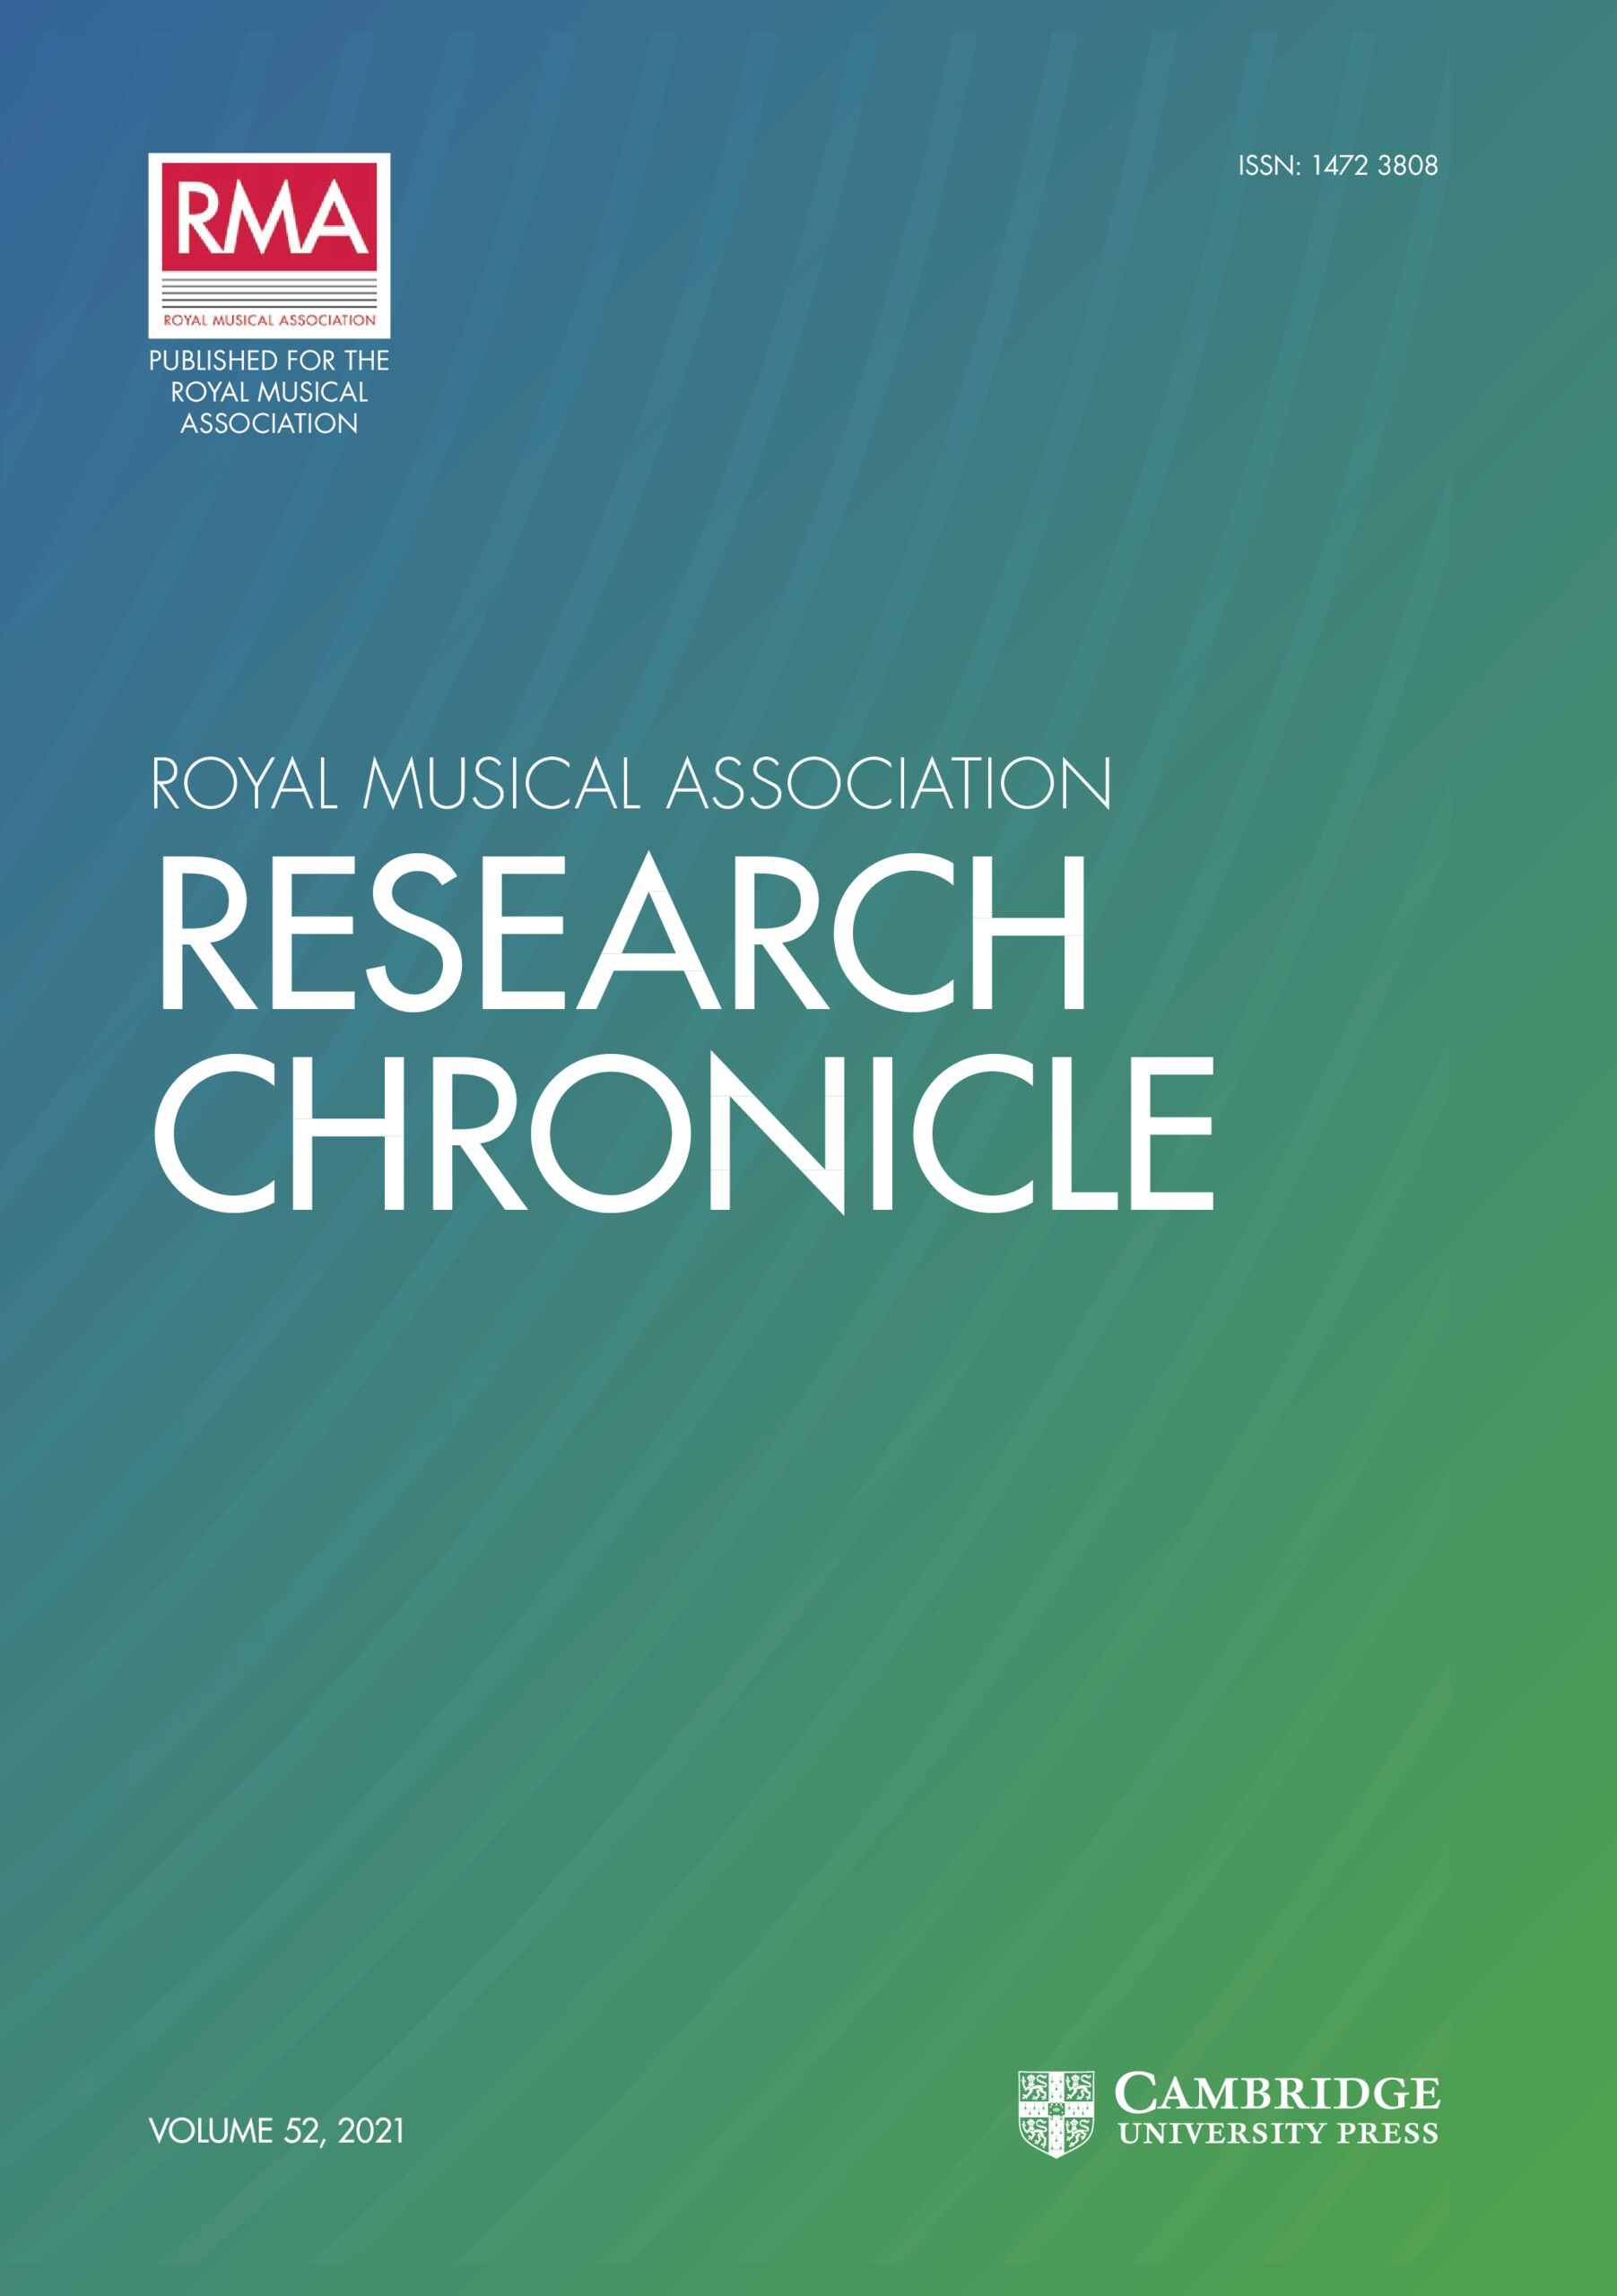 Royal Musical Association Research Chronicle